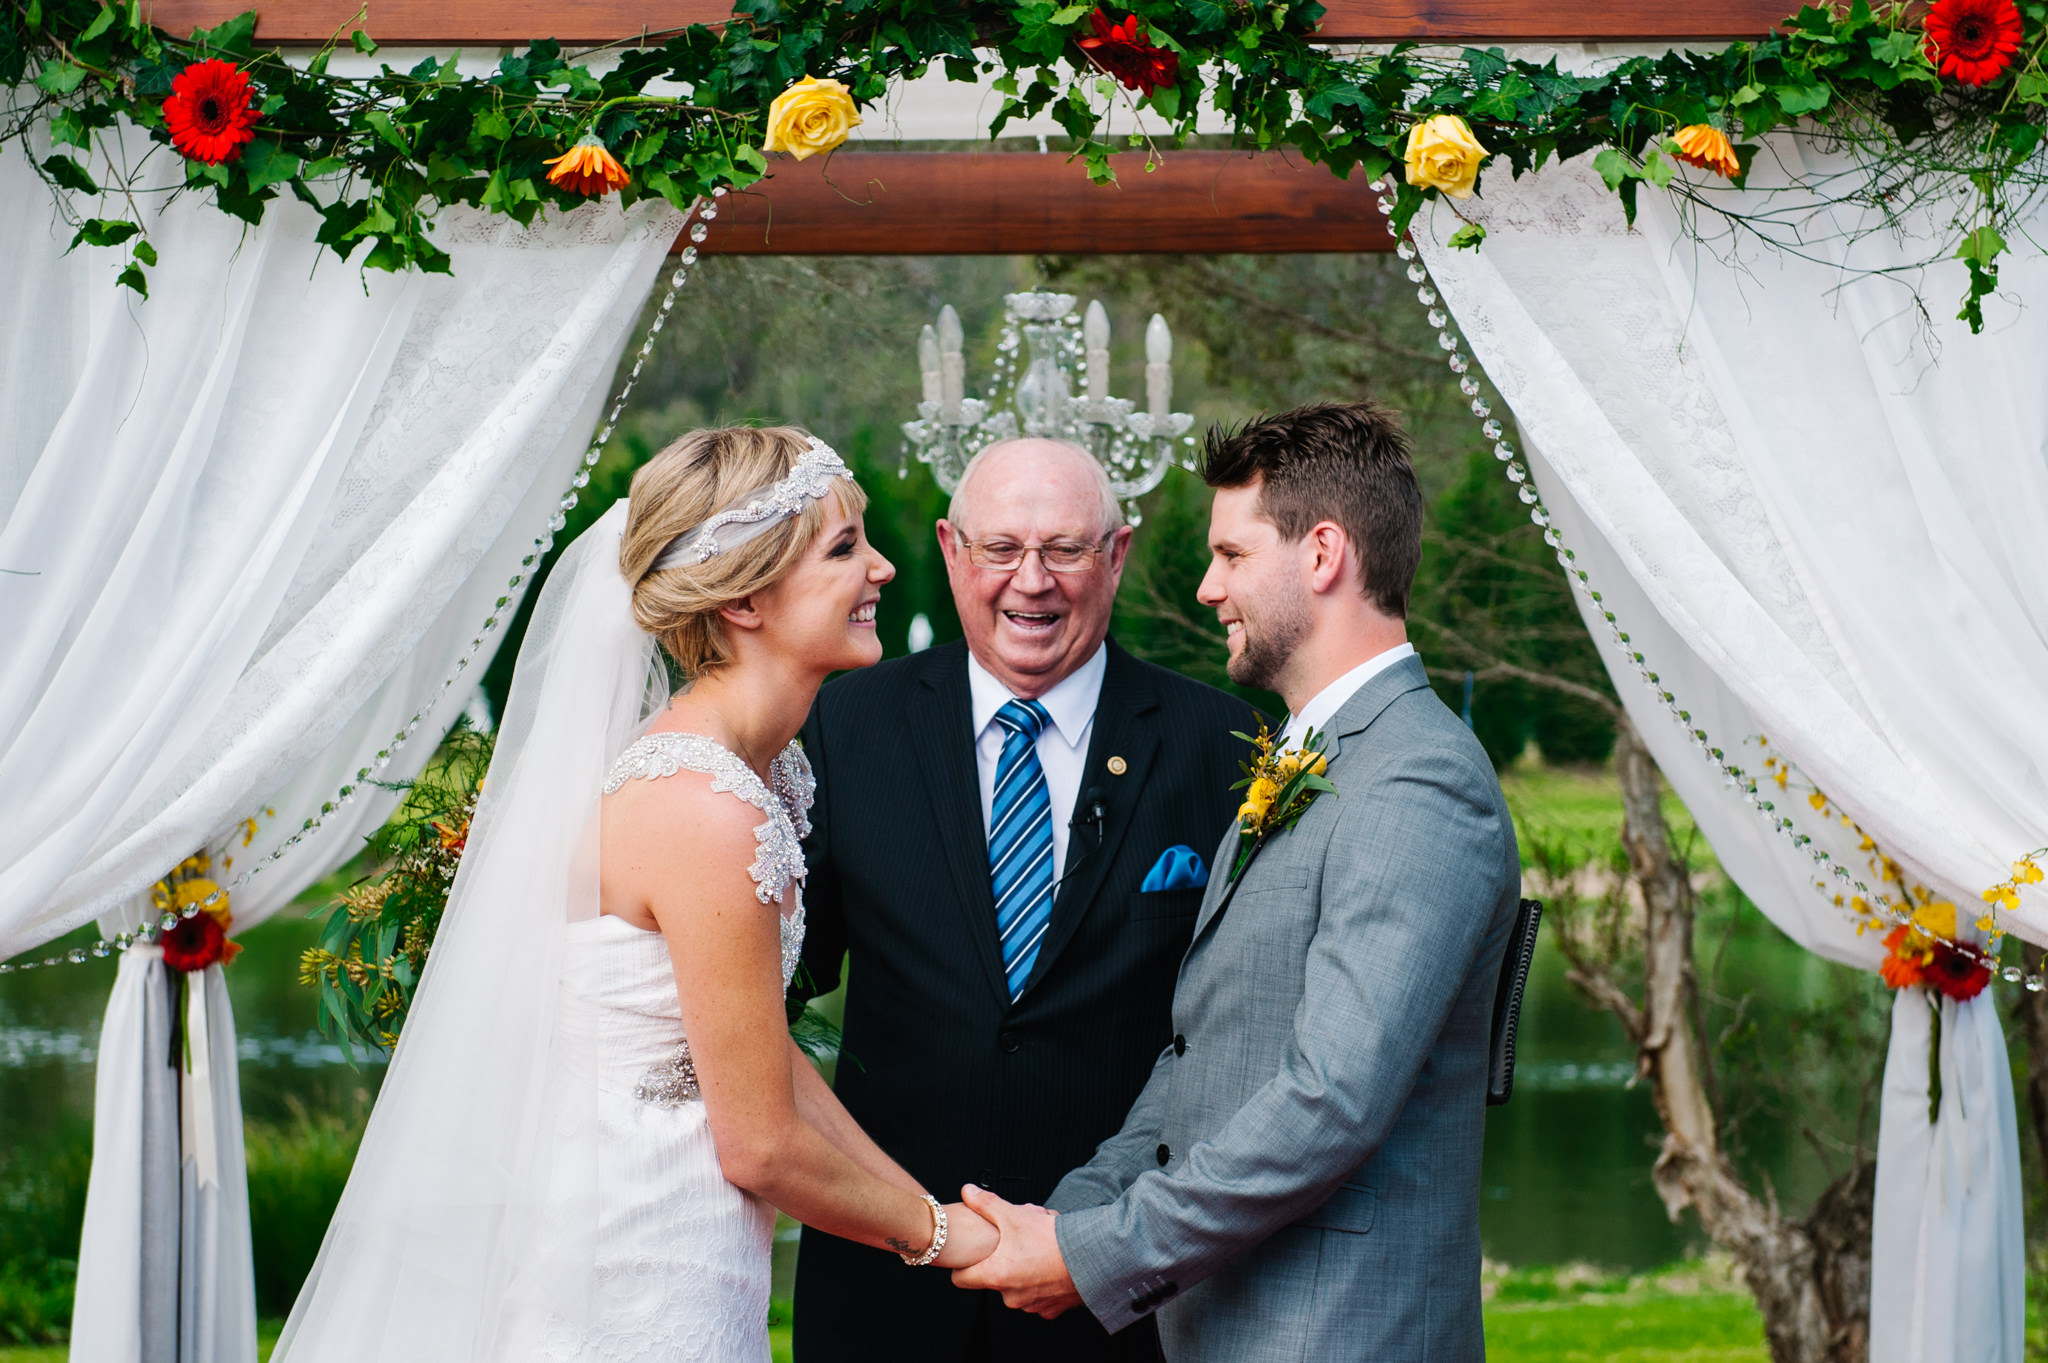 Bride and groom during ceremony under boho arbour at country wedding